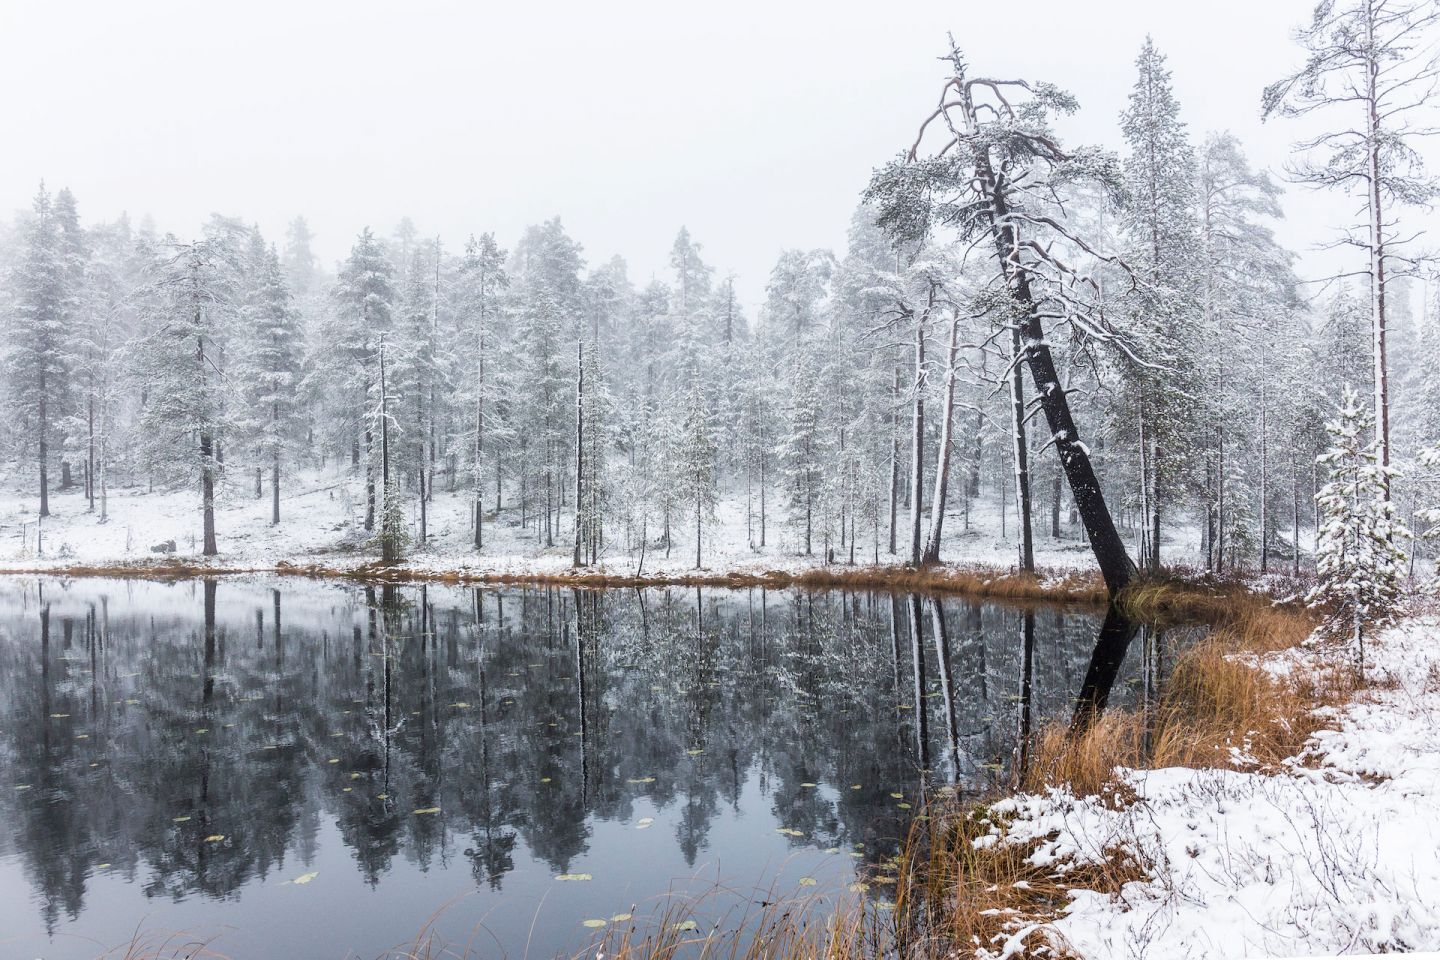 Pyhä-Luosto National Park in Lapland, Finland